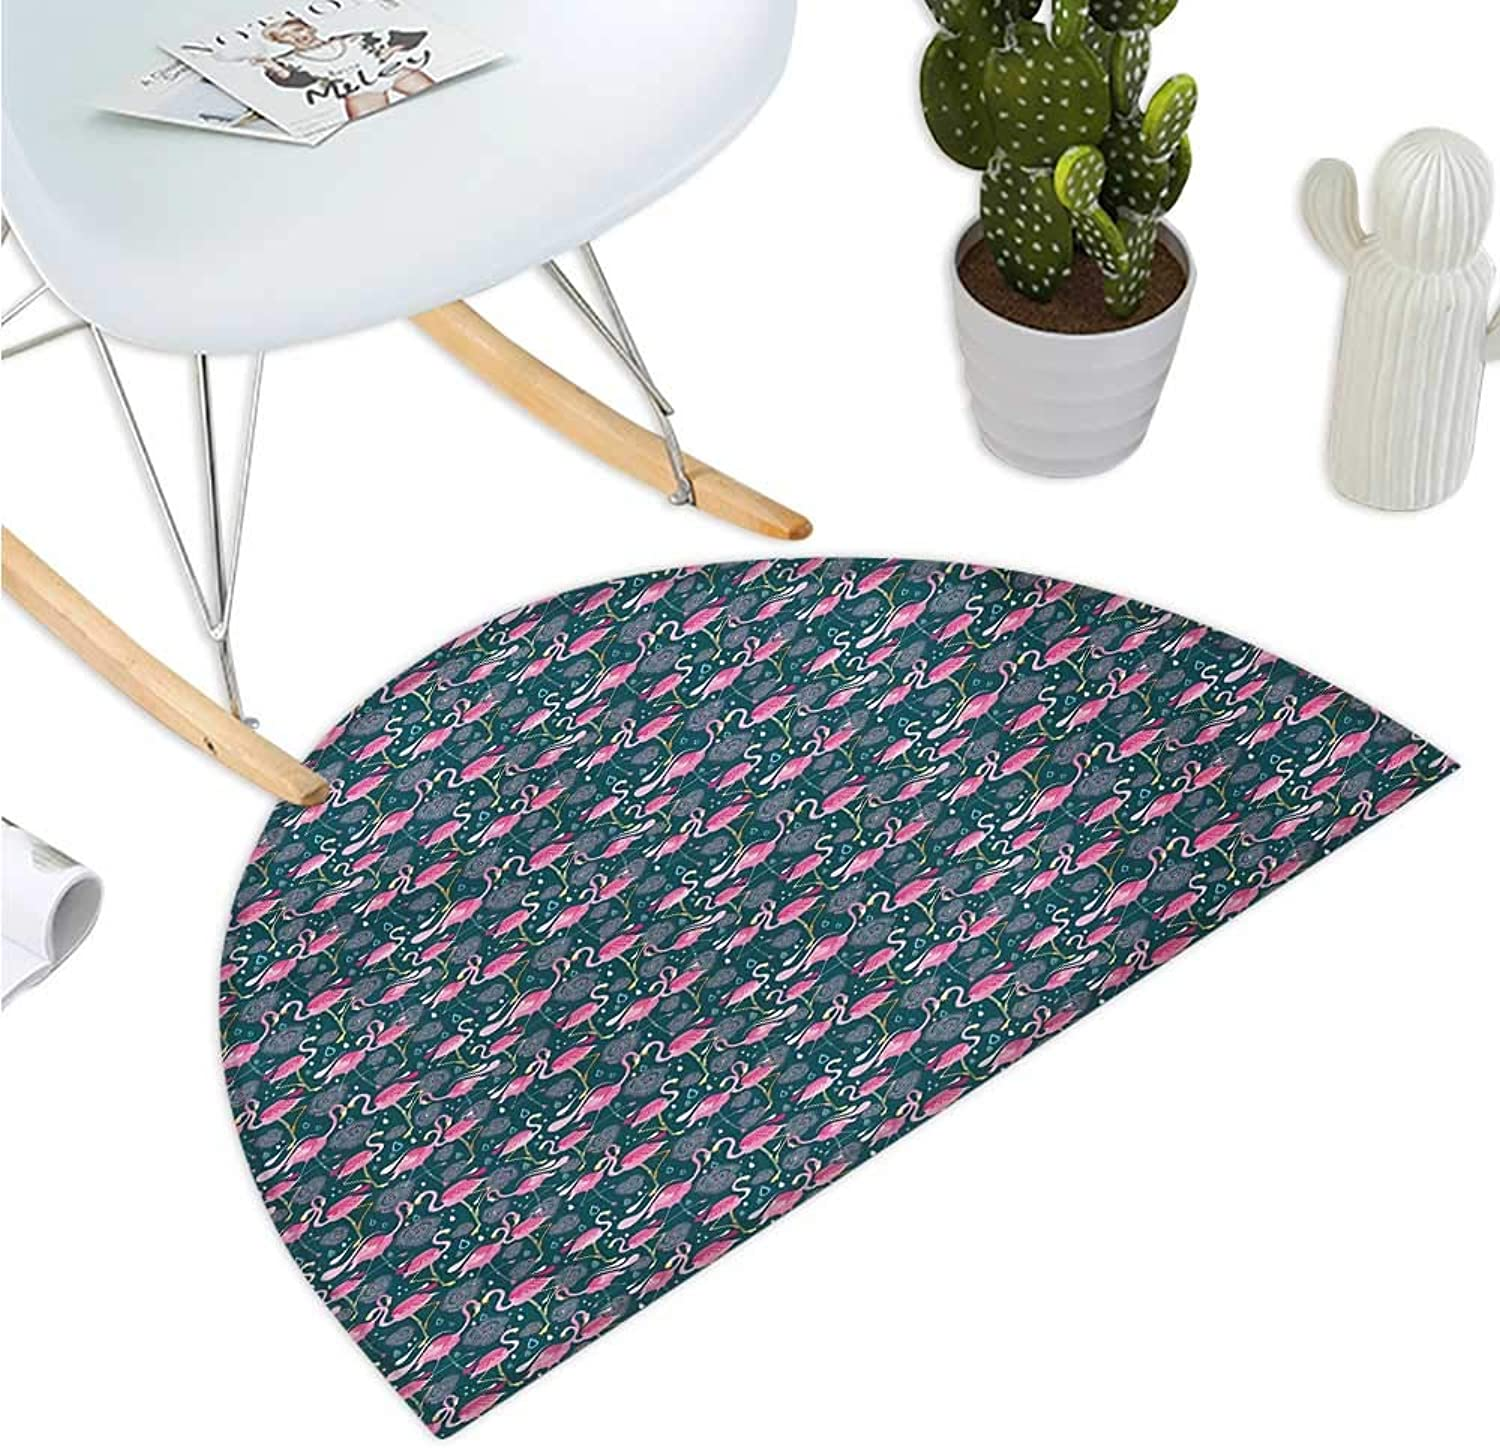 Flamingos Semicircular Cushion Exotic Bird Pattern with Flowers Hearts and Raindrops Tropical Bathroom Mat H 35.4  xD 53.1  Pink Dark Green Pale Pink